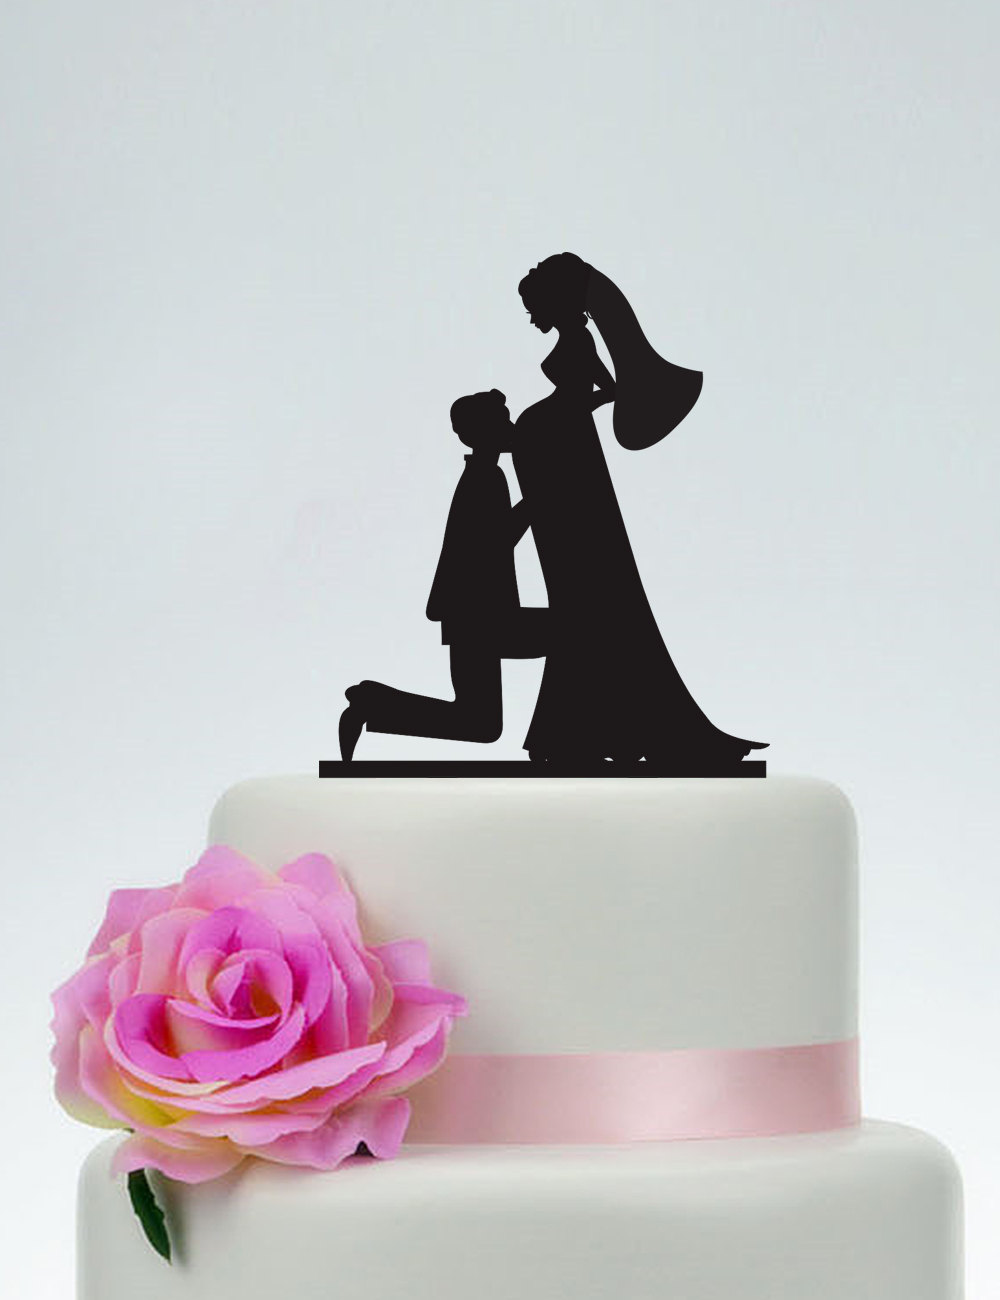 Pregnant Wedding Cake Topper, Bride & Groom Silhouette Cake Topper, Custom Topper, Unique Topper, Rustic Topper P110